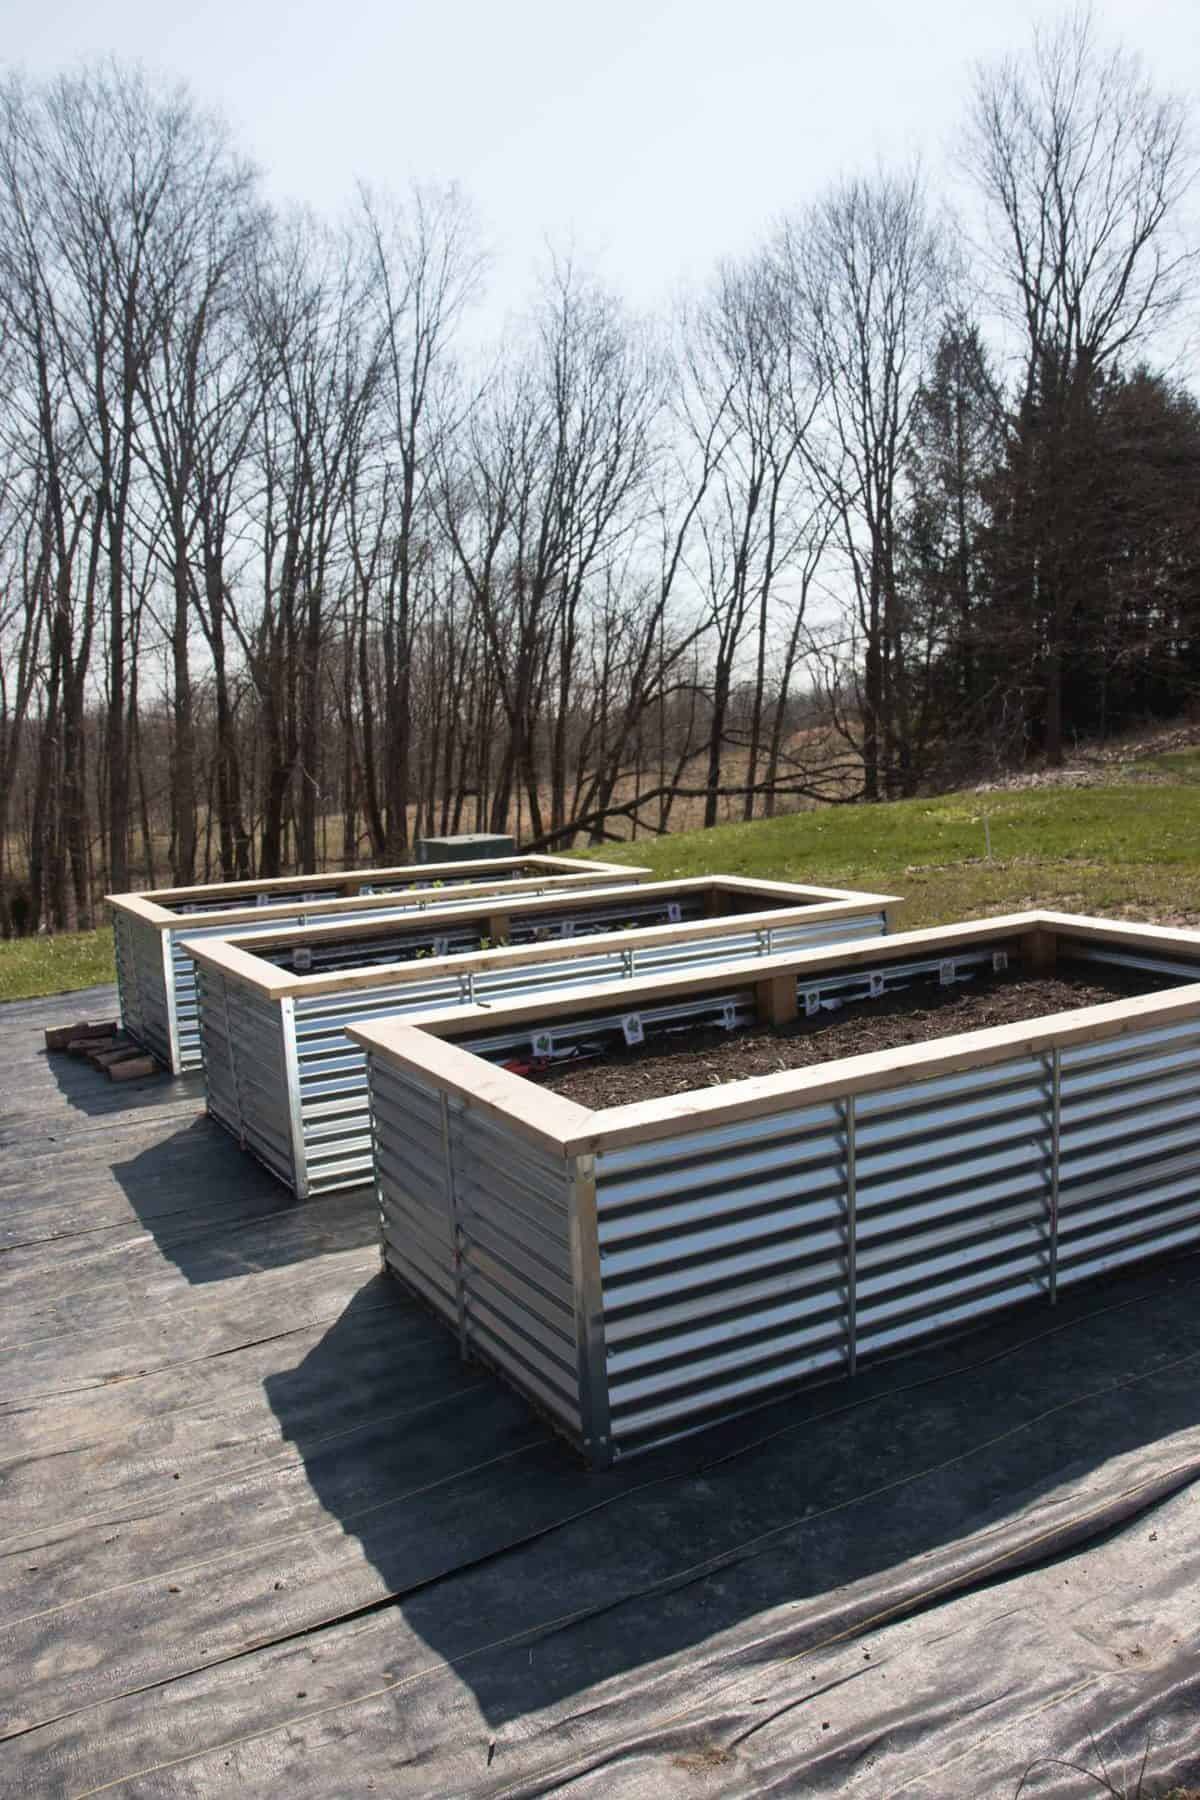 Three galvanized steel raised garden beds lined up on landscape fabric